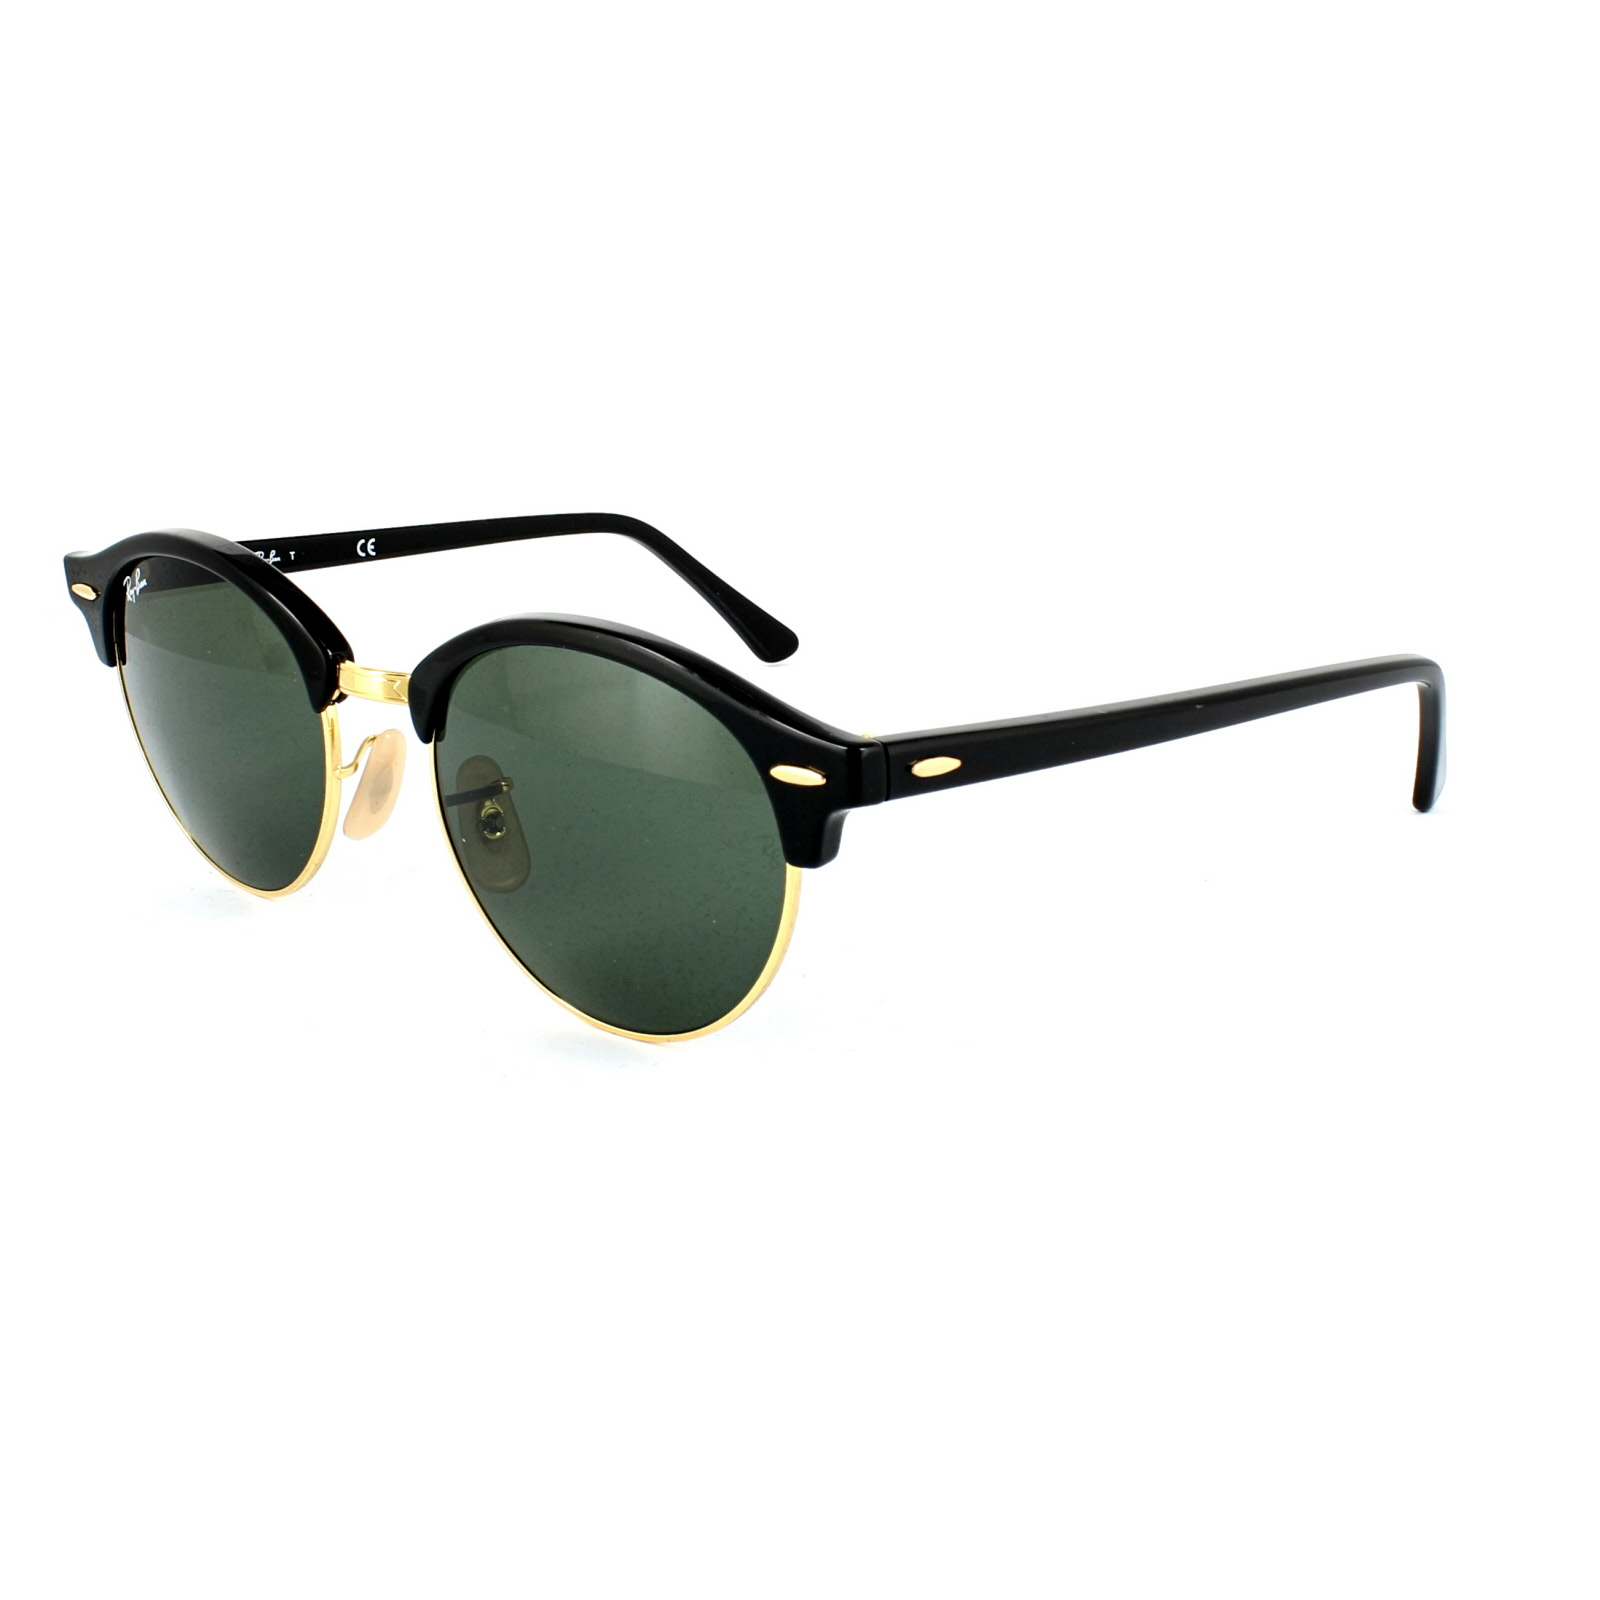 7c2151d0576 Cheap Ray-Ban Clubround 4246 Sunglasses - Discounted Sunglasses